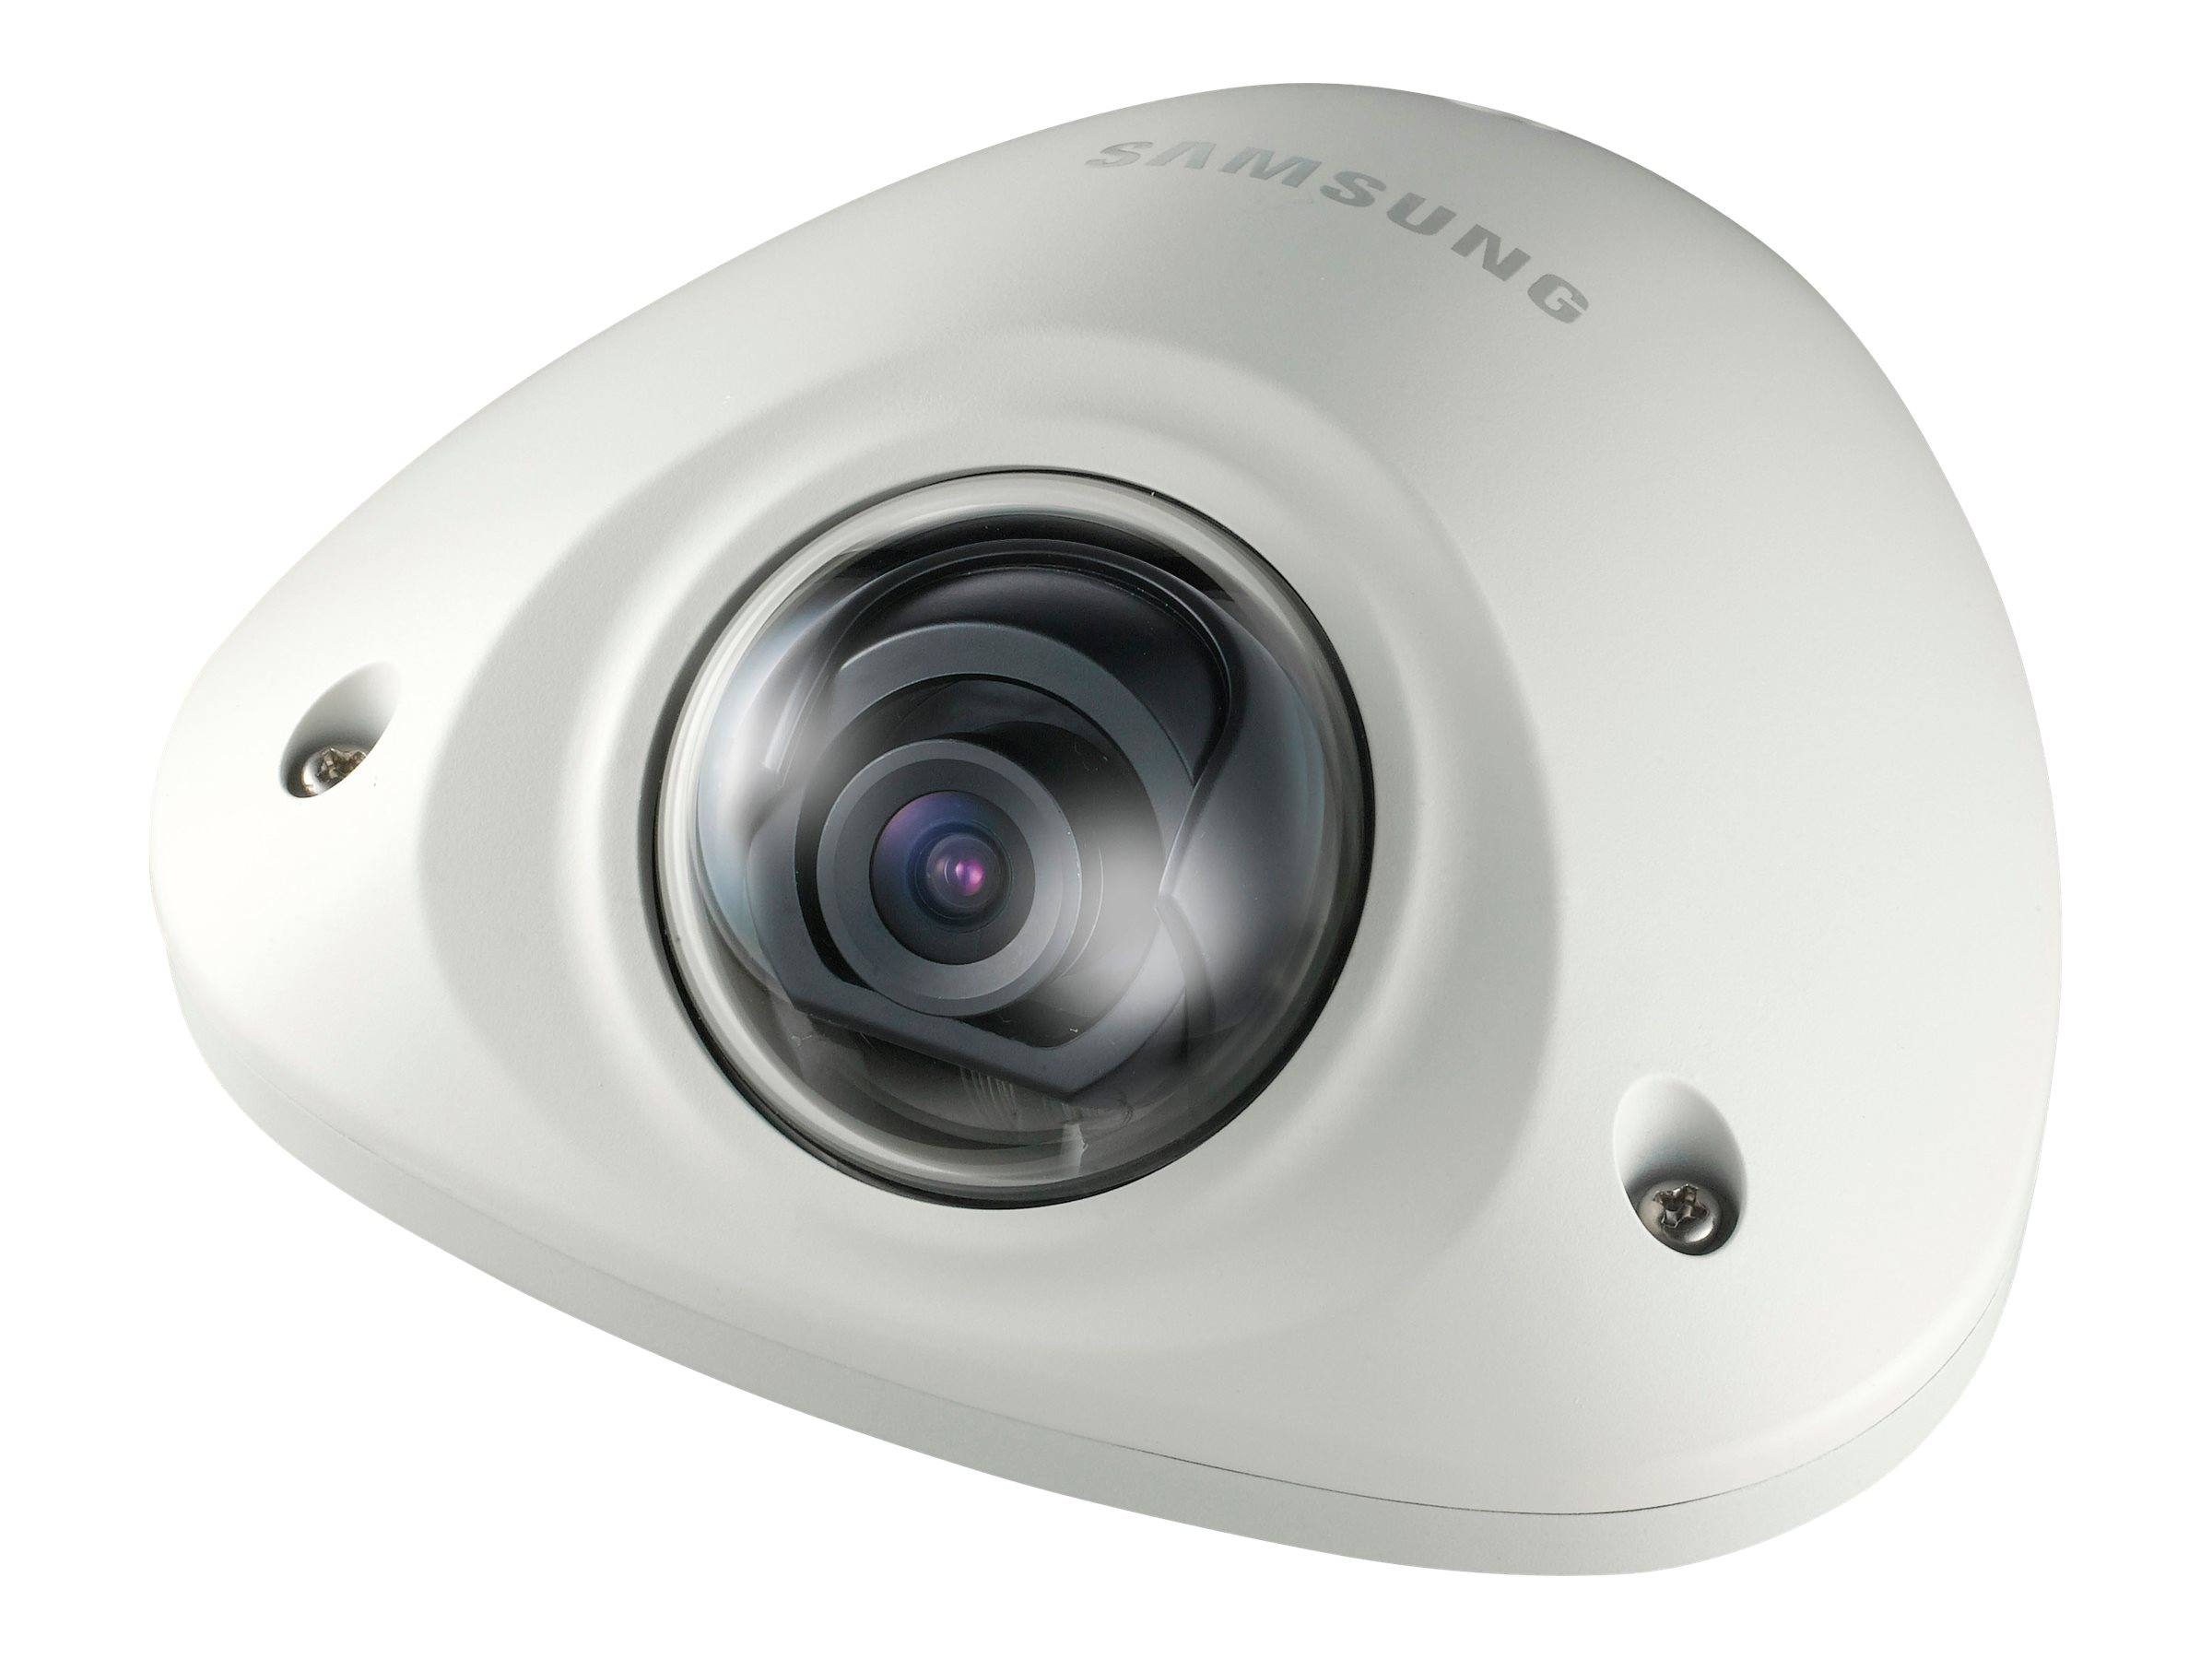 Samsung 2MP 1080p Full HD Vandal-Resistant Network Mobile Flat Camera, SNV-6012M